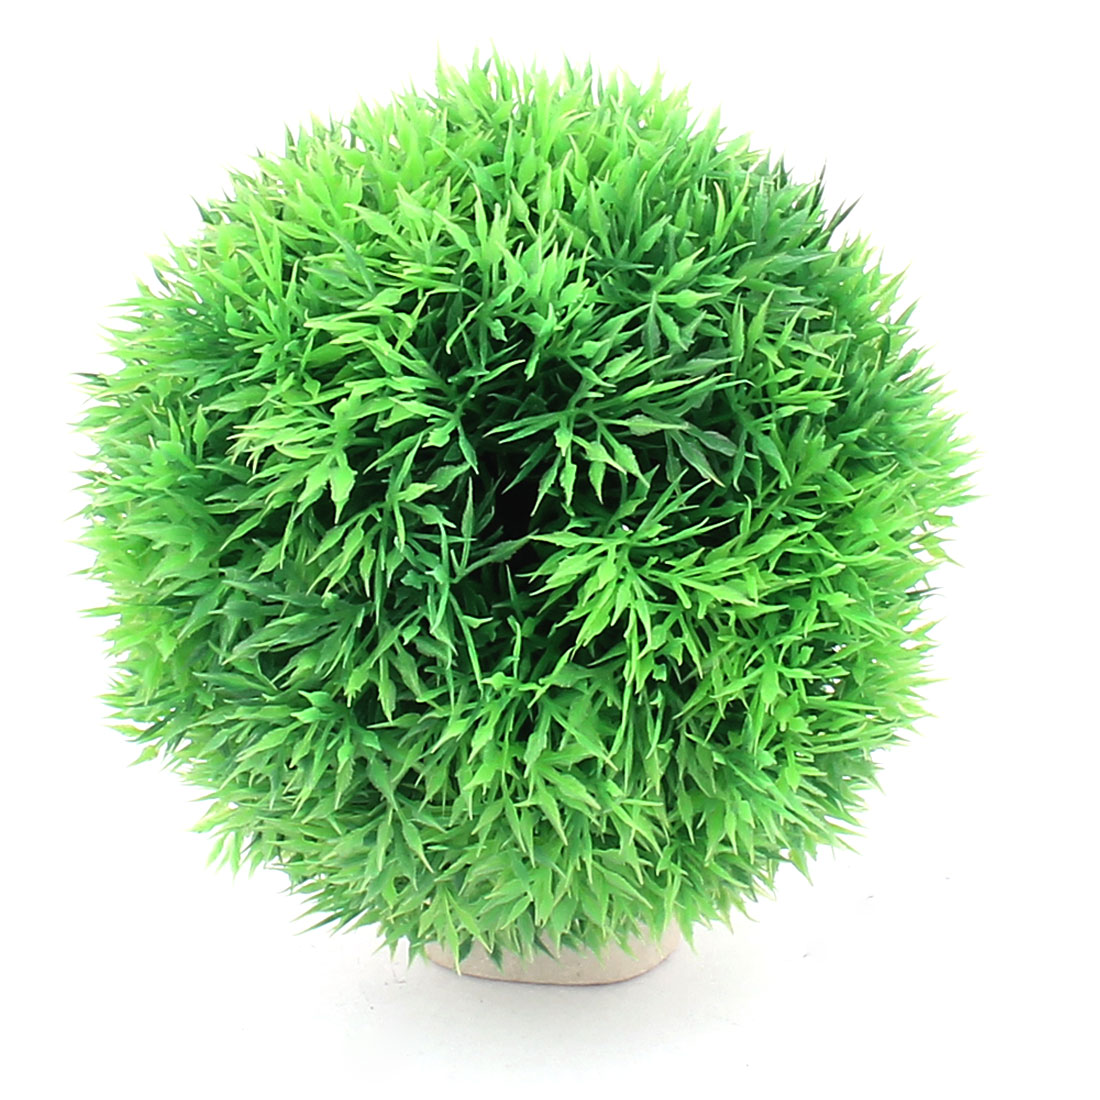 Plastic Leaf Grass Ball Design Aquatic Plant Fish Tank Aquarium Decoration